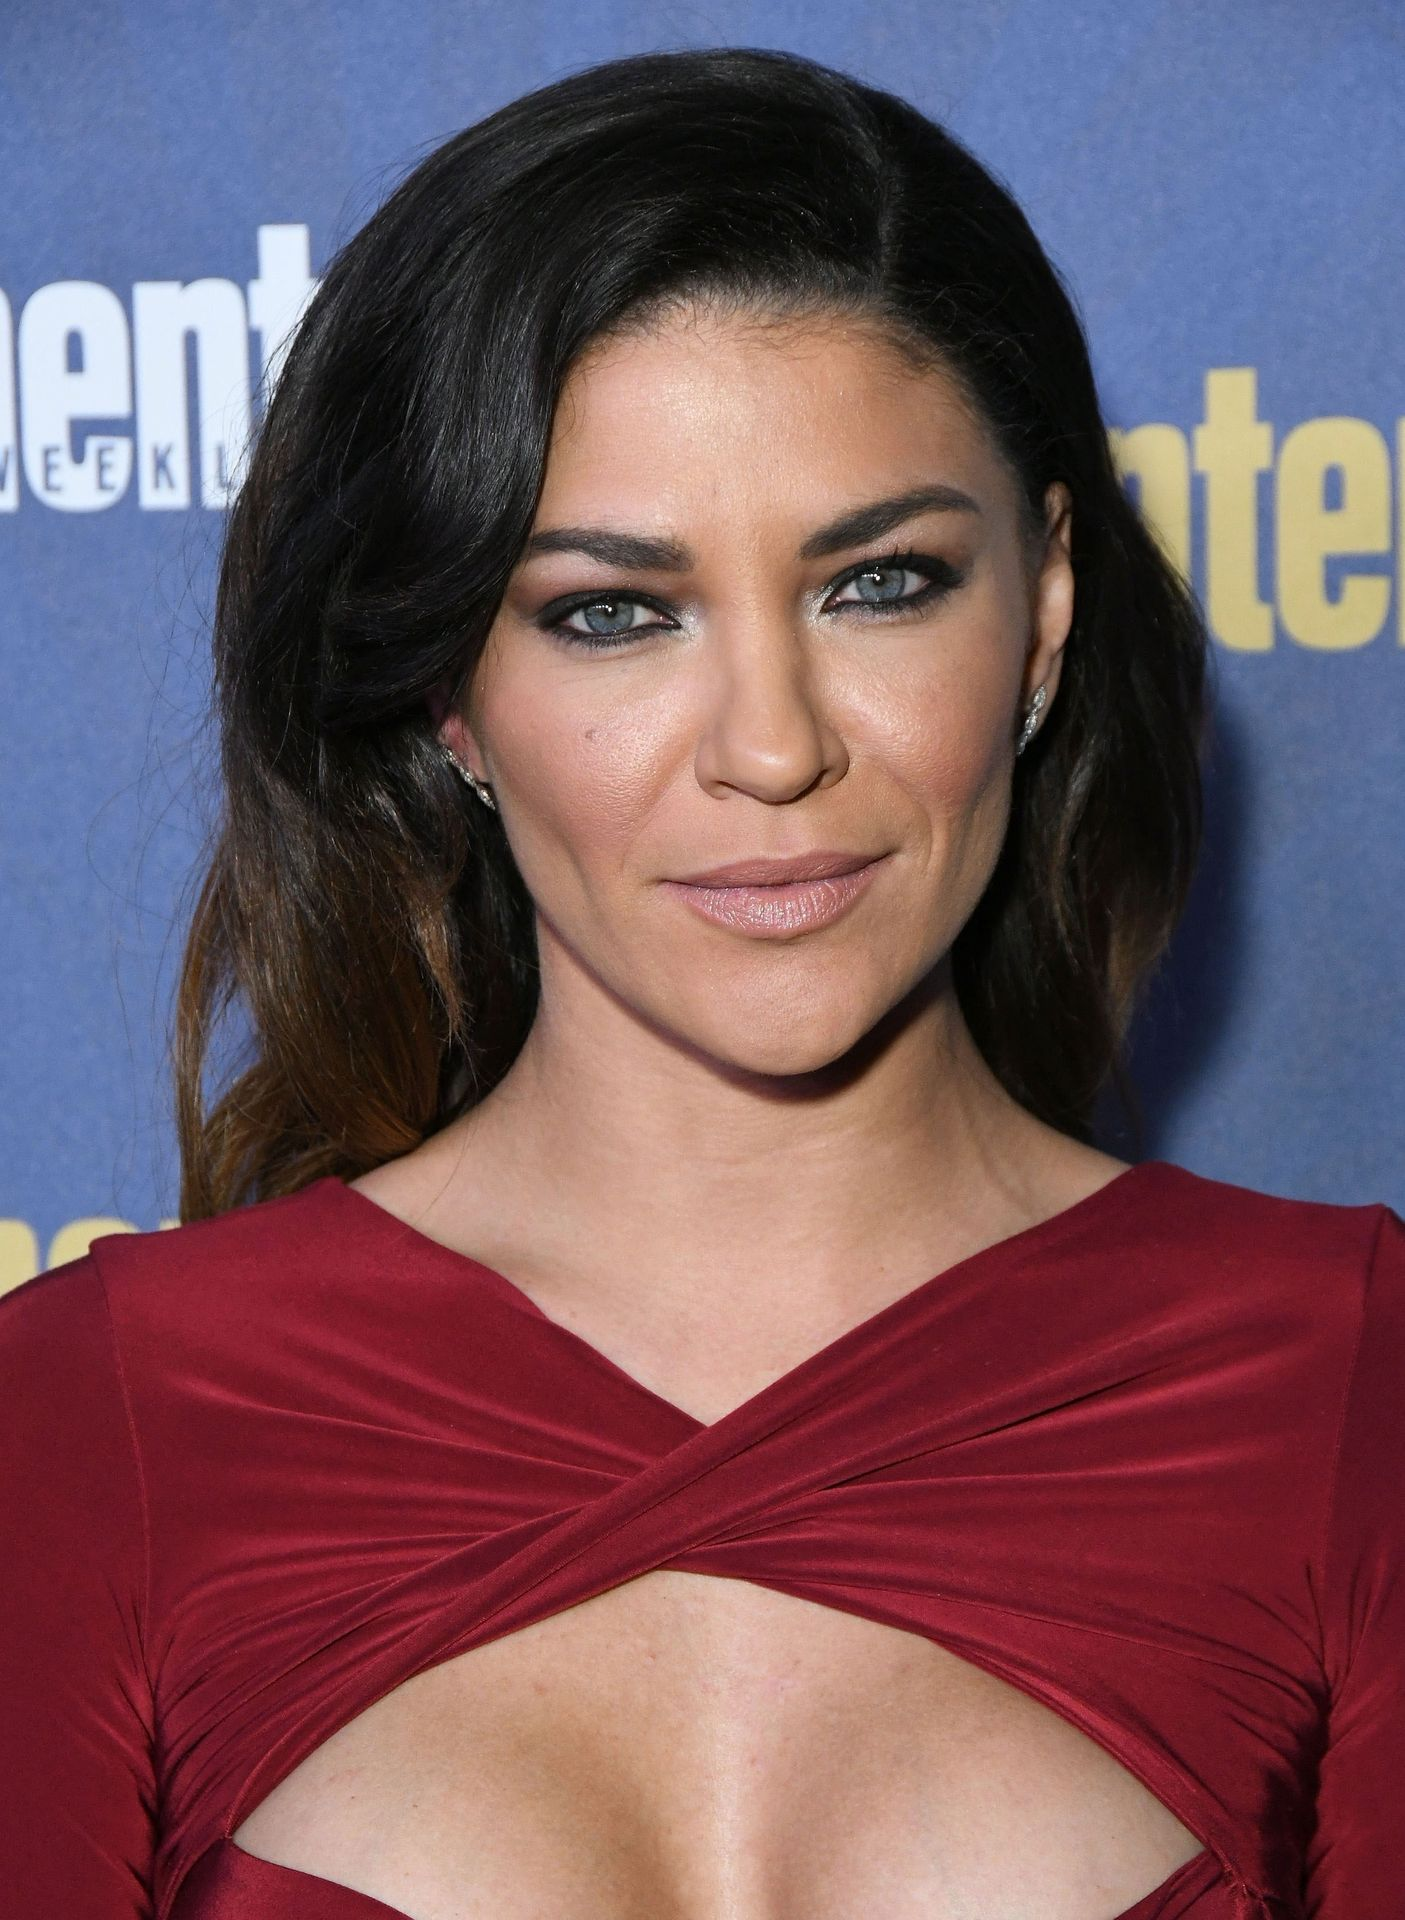 Jessica Szohr Shows Her Cleavage At The Entertainment Weekly Pre Sag Awards Celebration 0017